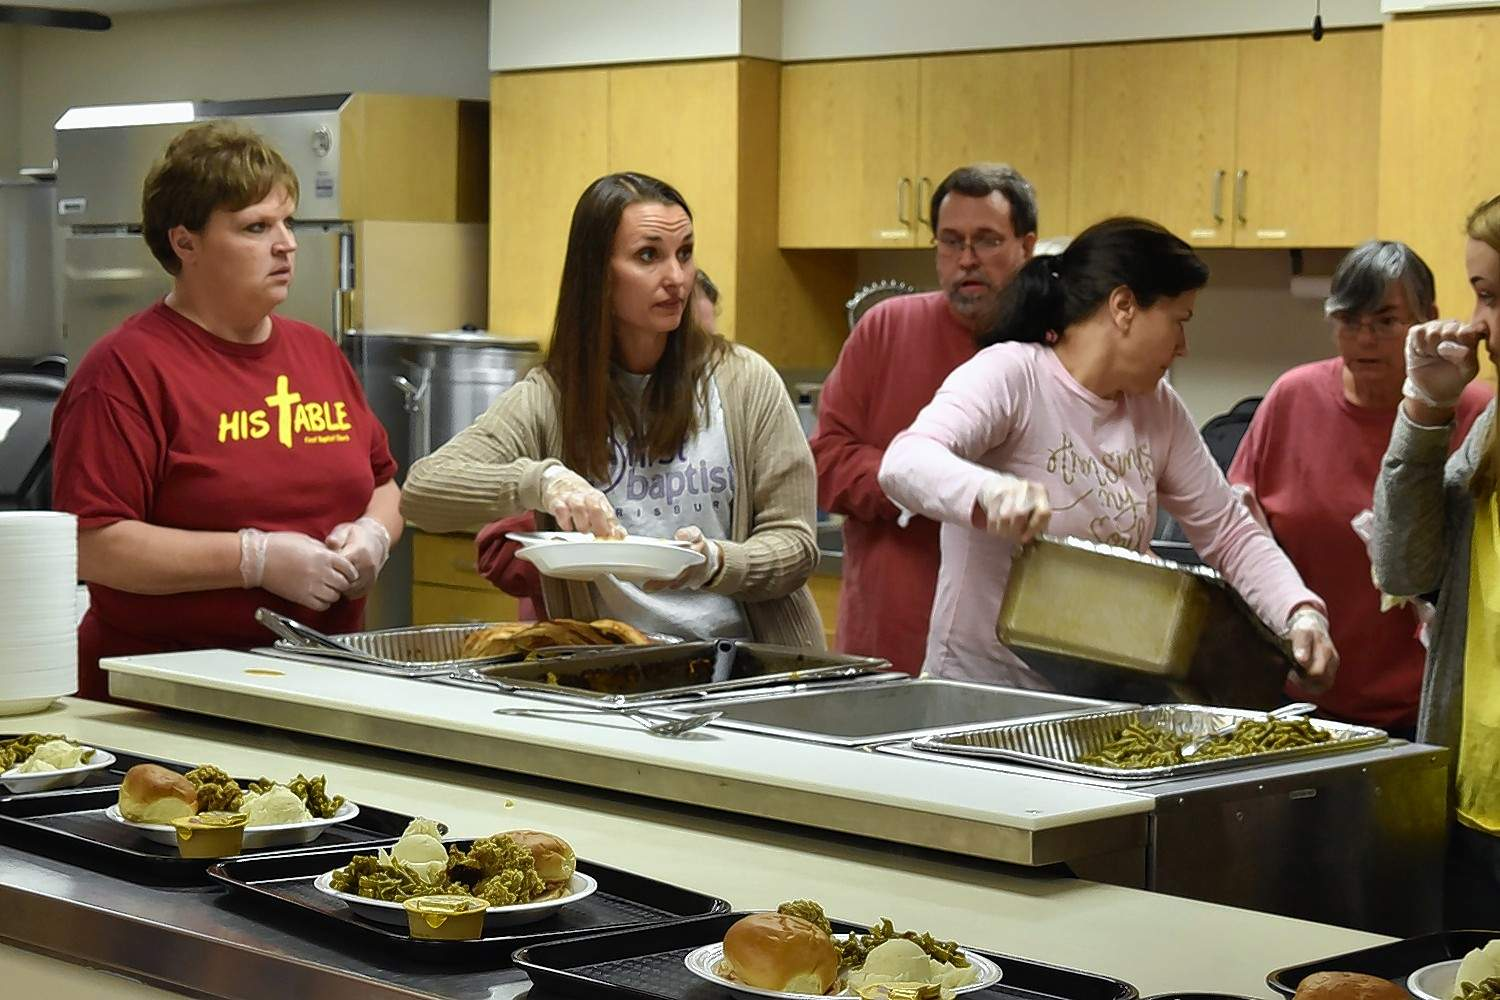 First Baptist Church kitchen volunteers Angie Henson, left, and Laura Winkleman prepare plates for guests Thursday afternoon. TURN TO PAGE 3 MORE PHOTOS.